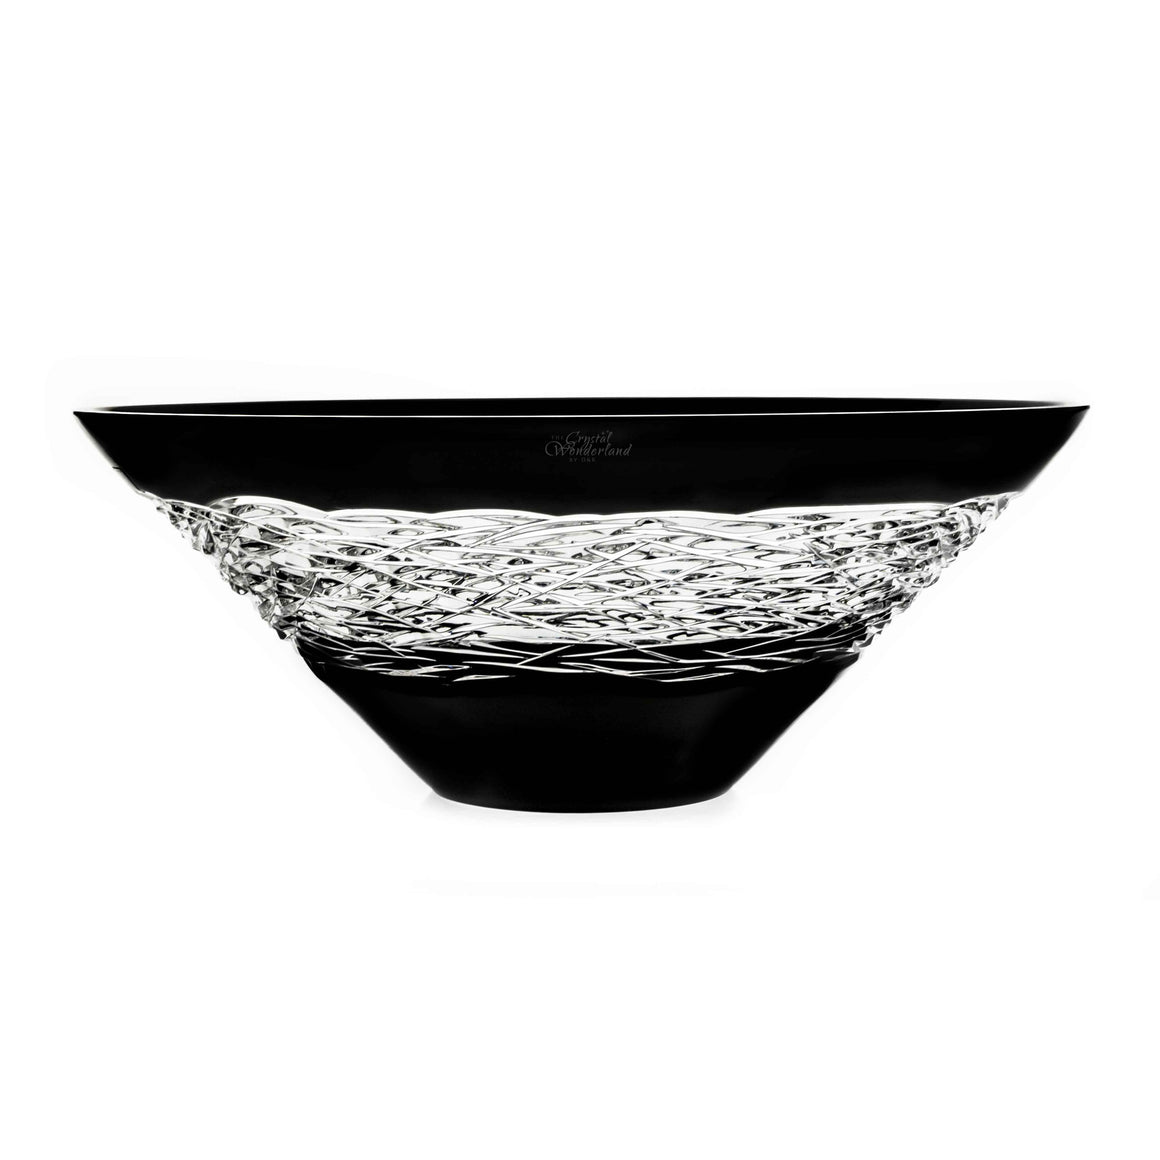 Noir Crystal Bowl - The Crystal Wonderland